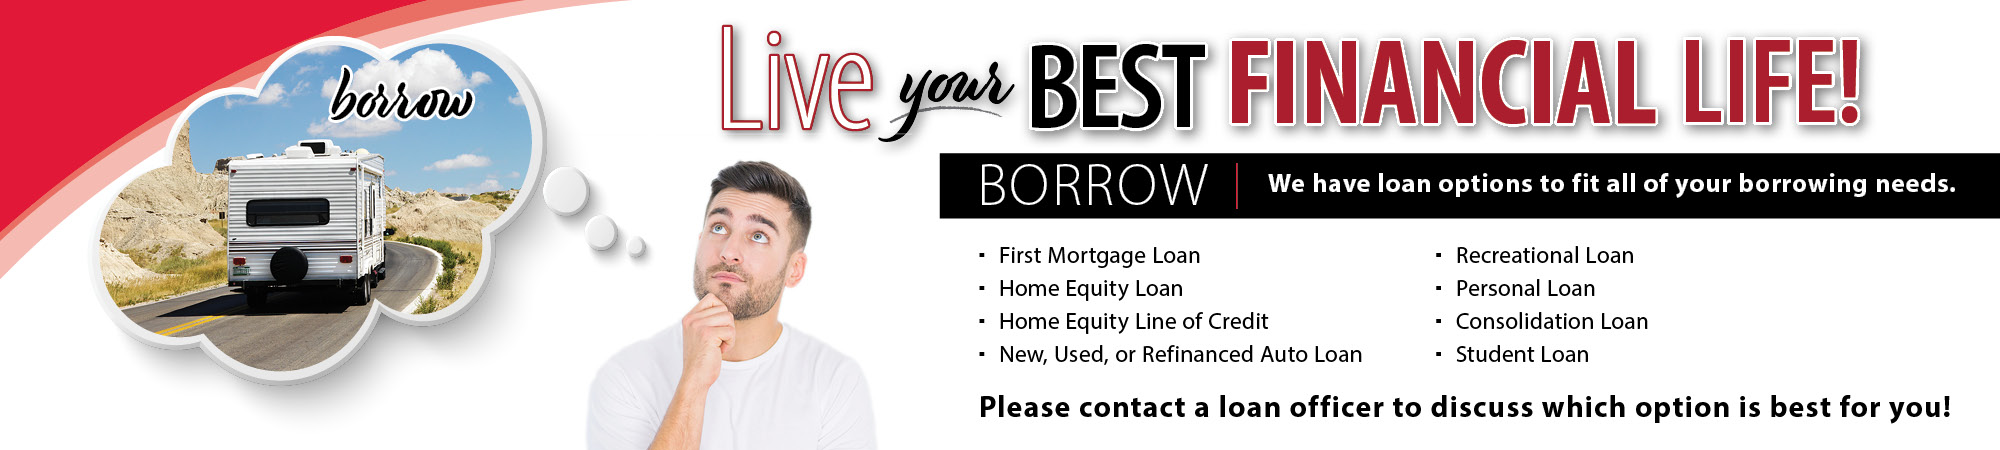 Borrow – Live your best financial life